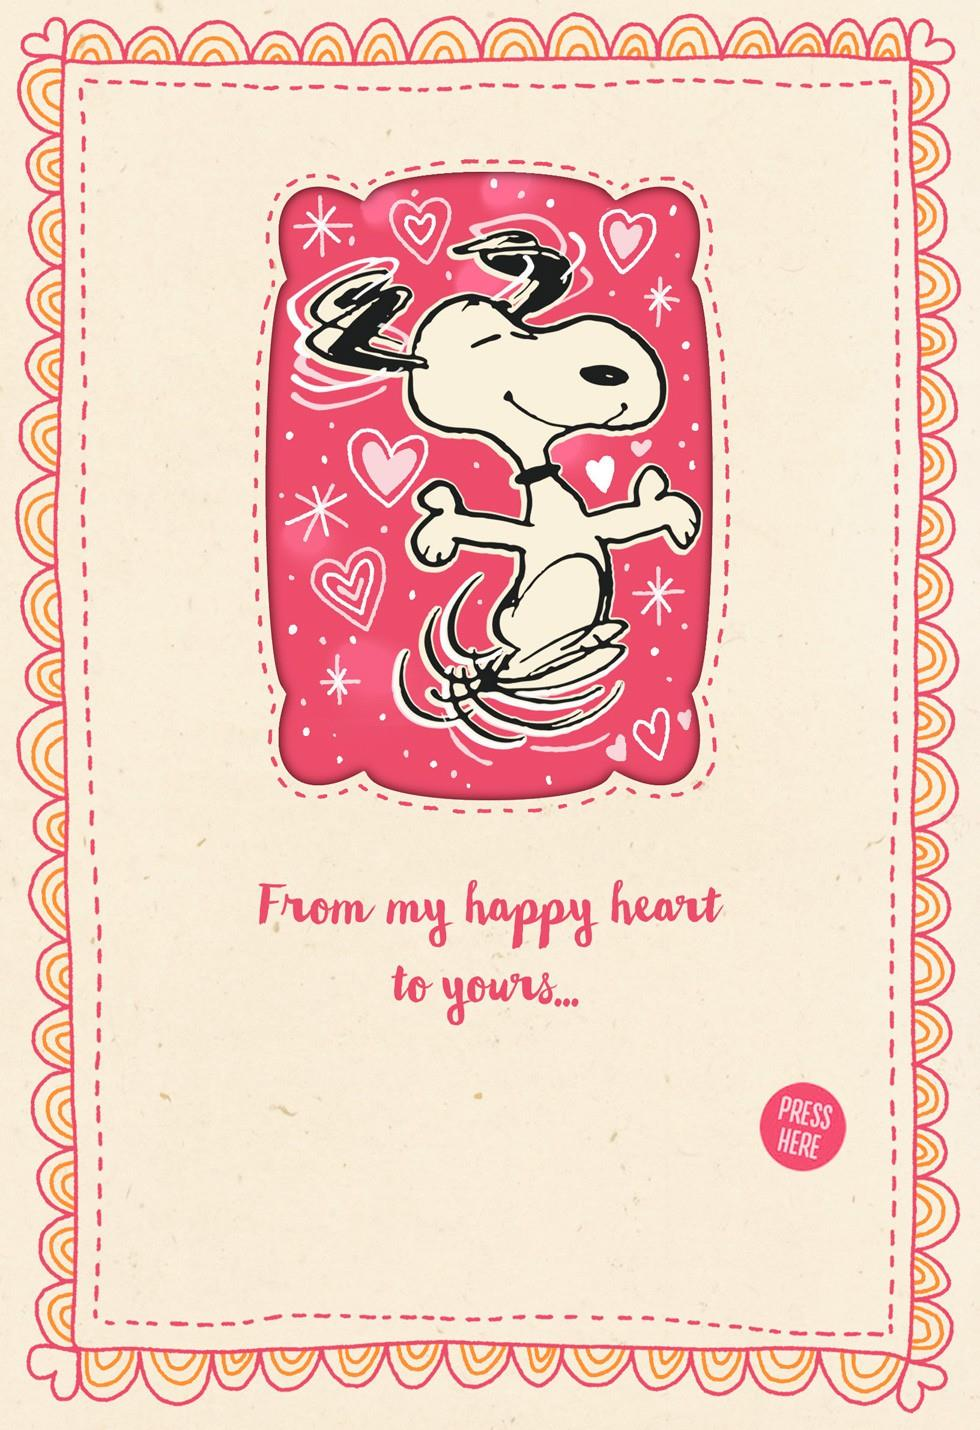 Snoopy musical valentines day card with light greeting cards snoopy musical valentines day card with light m4hsunfo